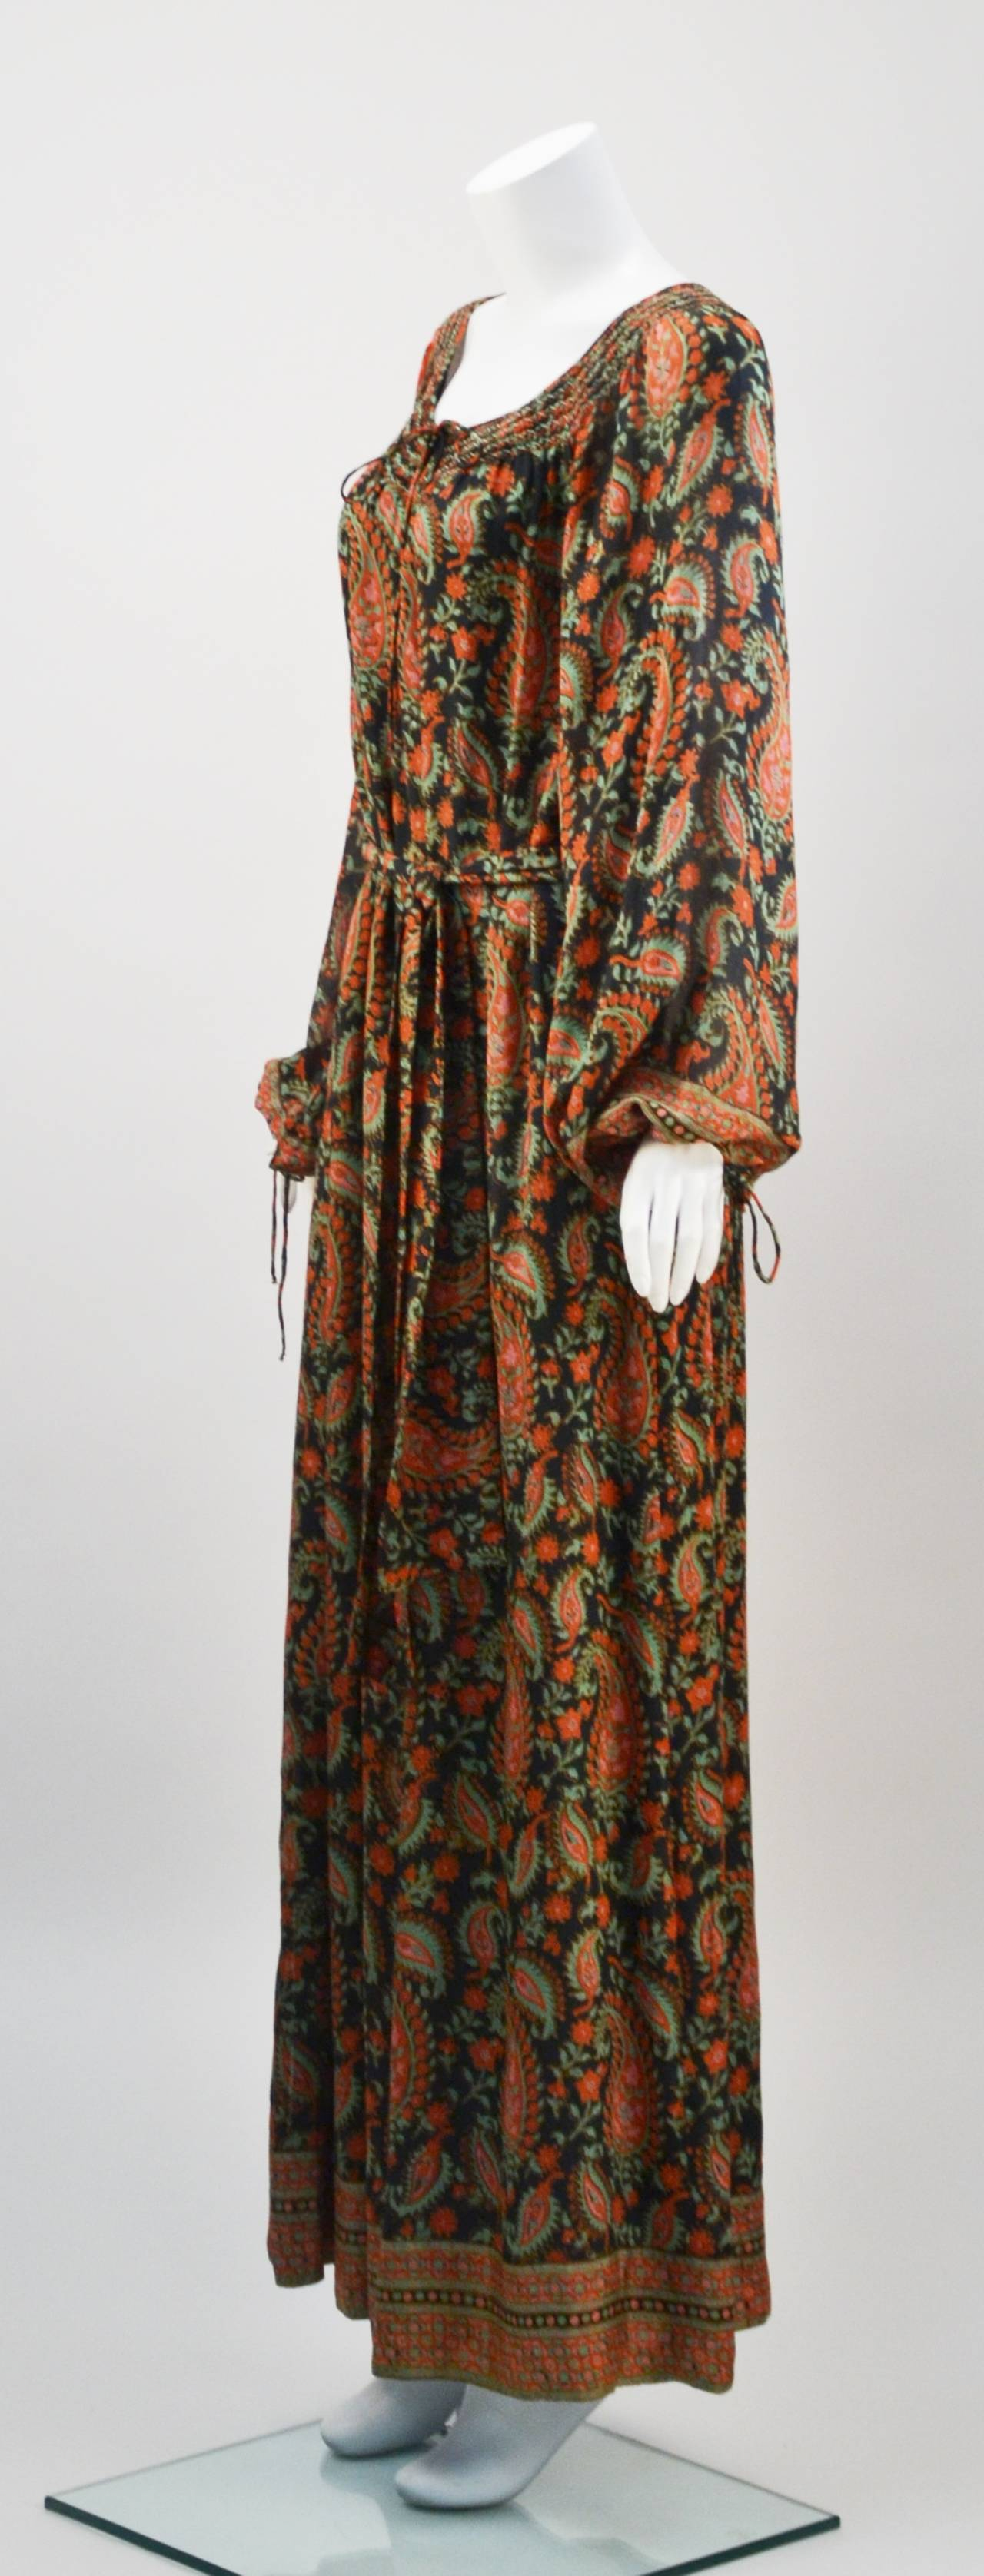 Wonderful Treacy Lowe Caftan dress is perfect for summer and wildly romantic, not to mention uber comfortable! Beautiful drape and design makes for a pretty dress. Scoop neck and blouson sleeves with ties at wrist. Almost floor length with a tie at